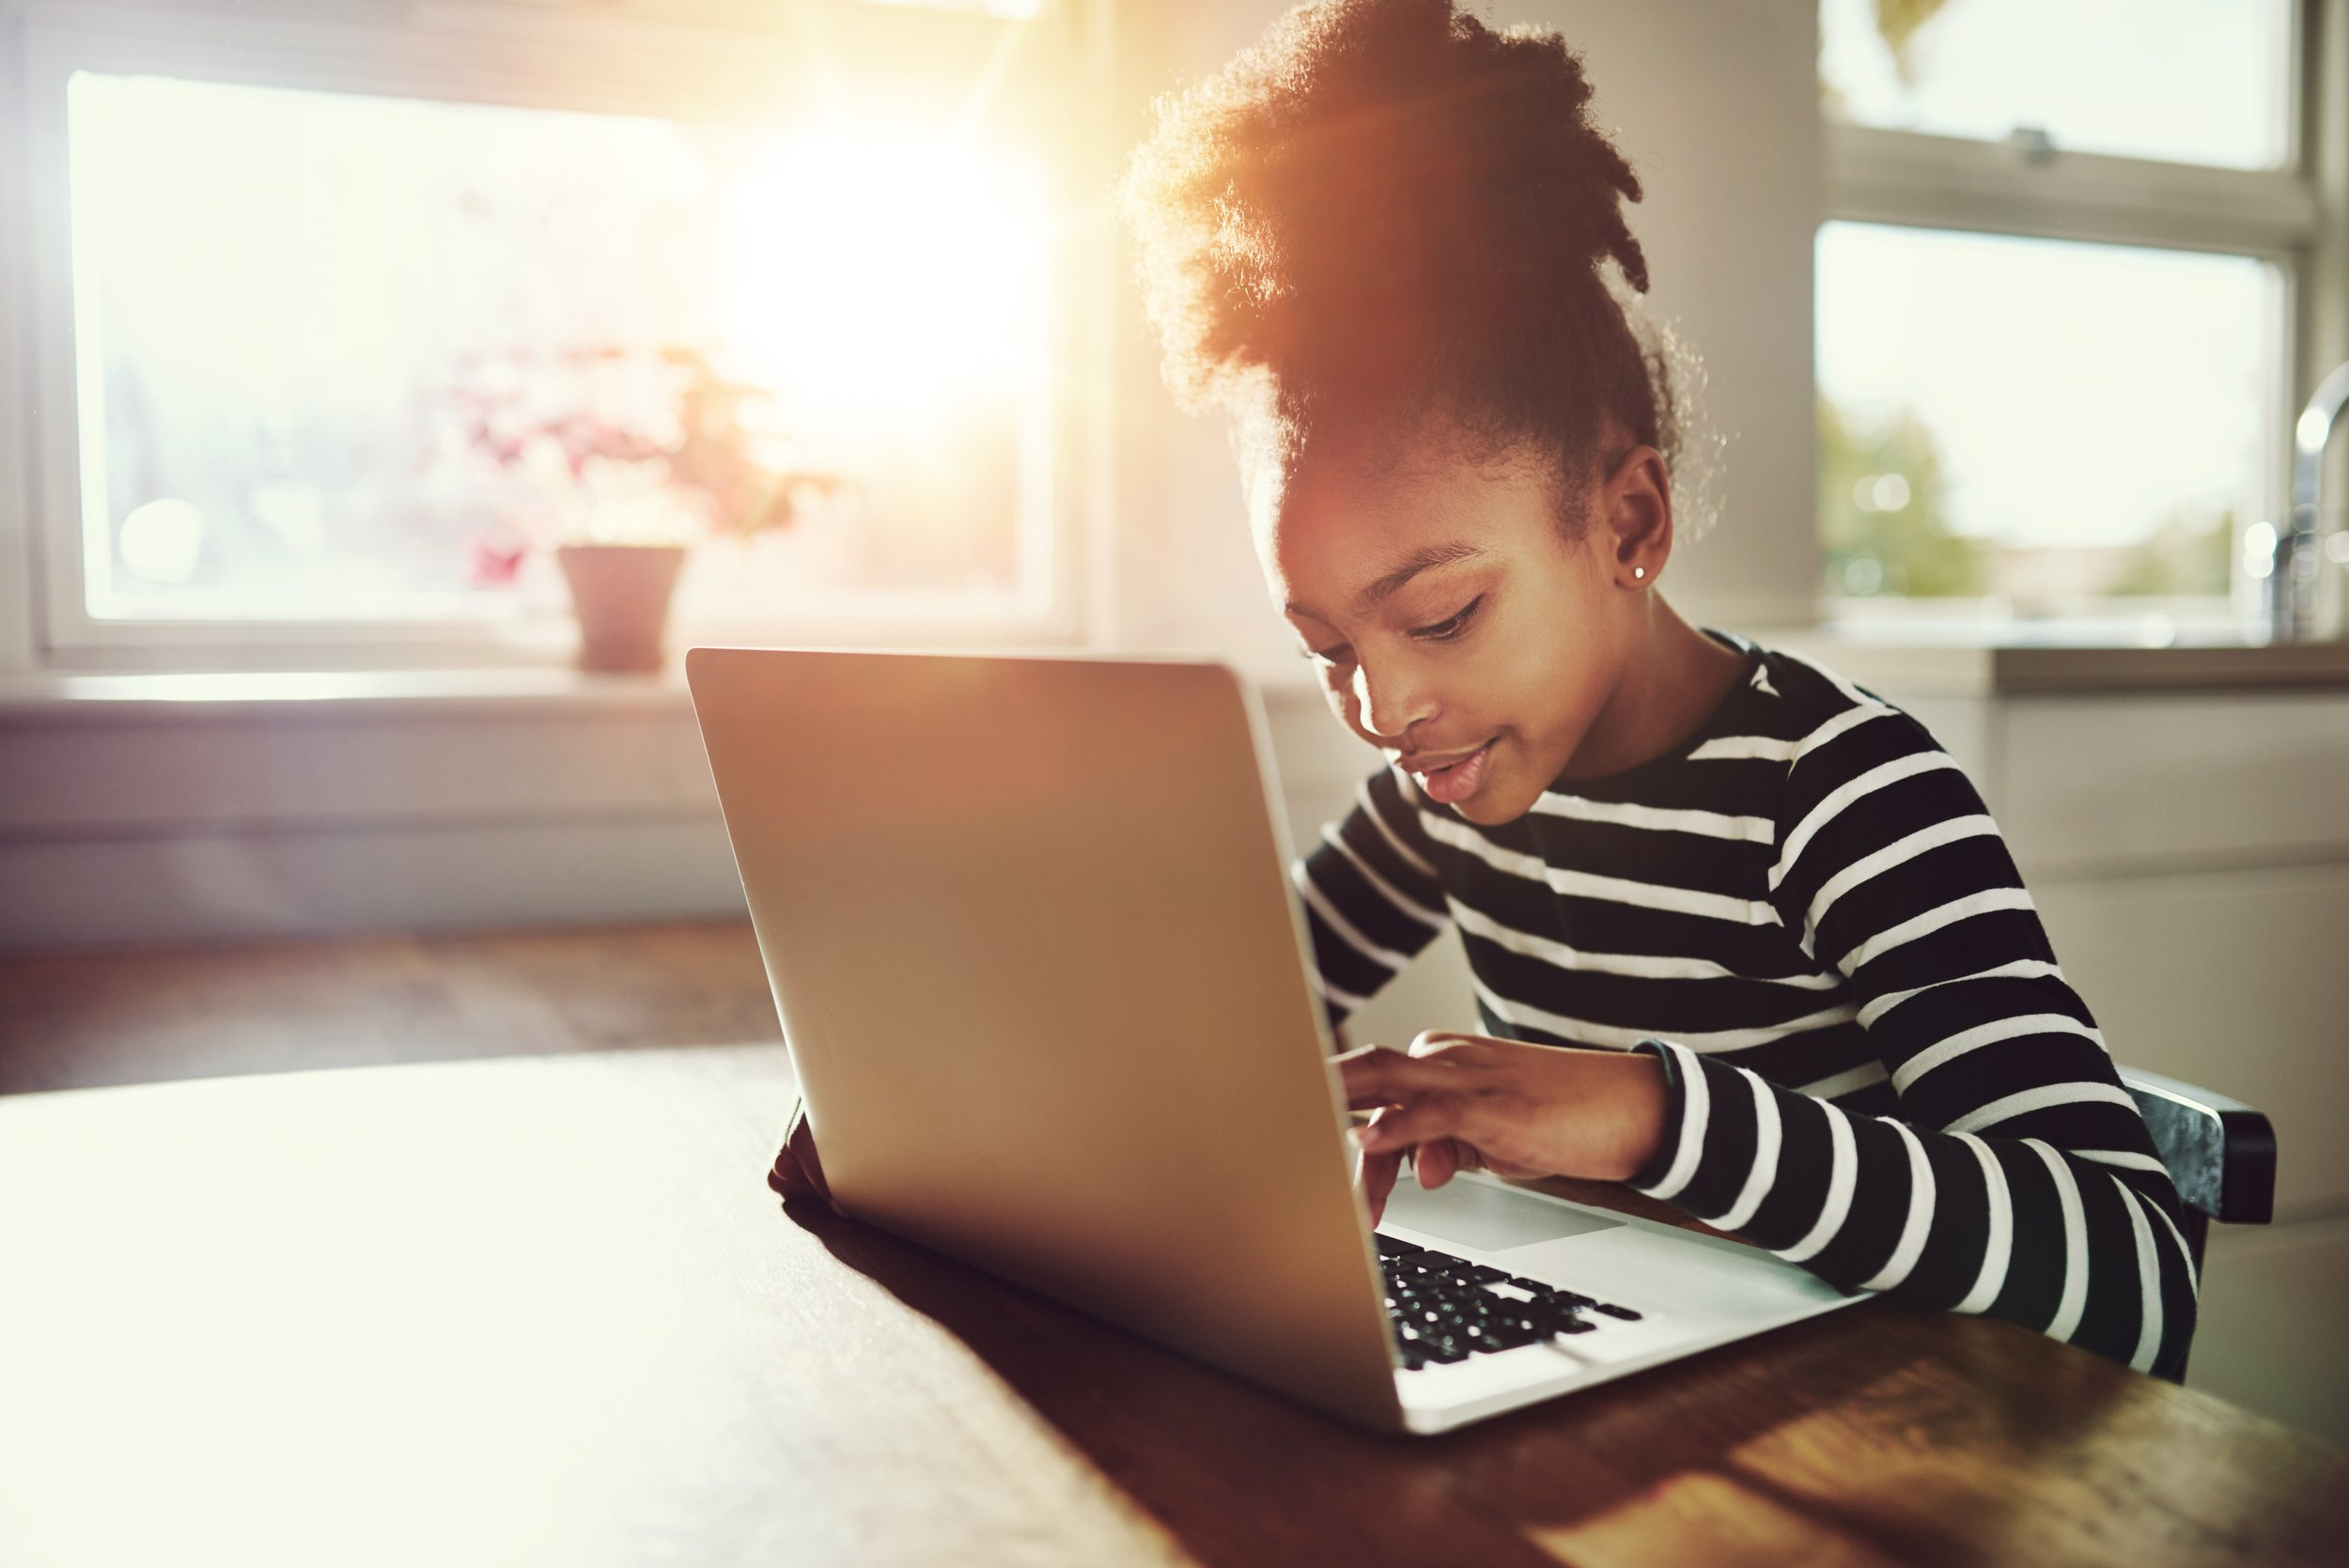 Girl and a laptop.jpeg